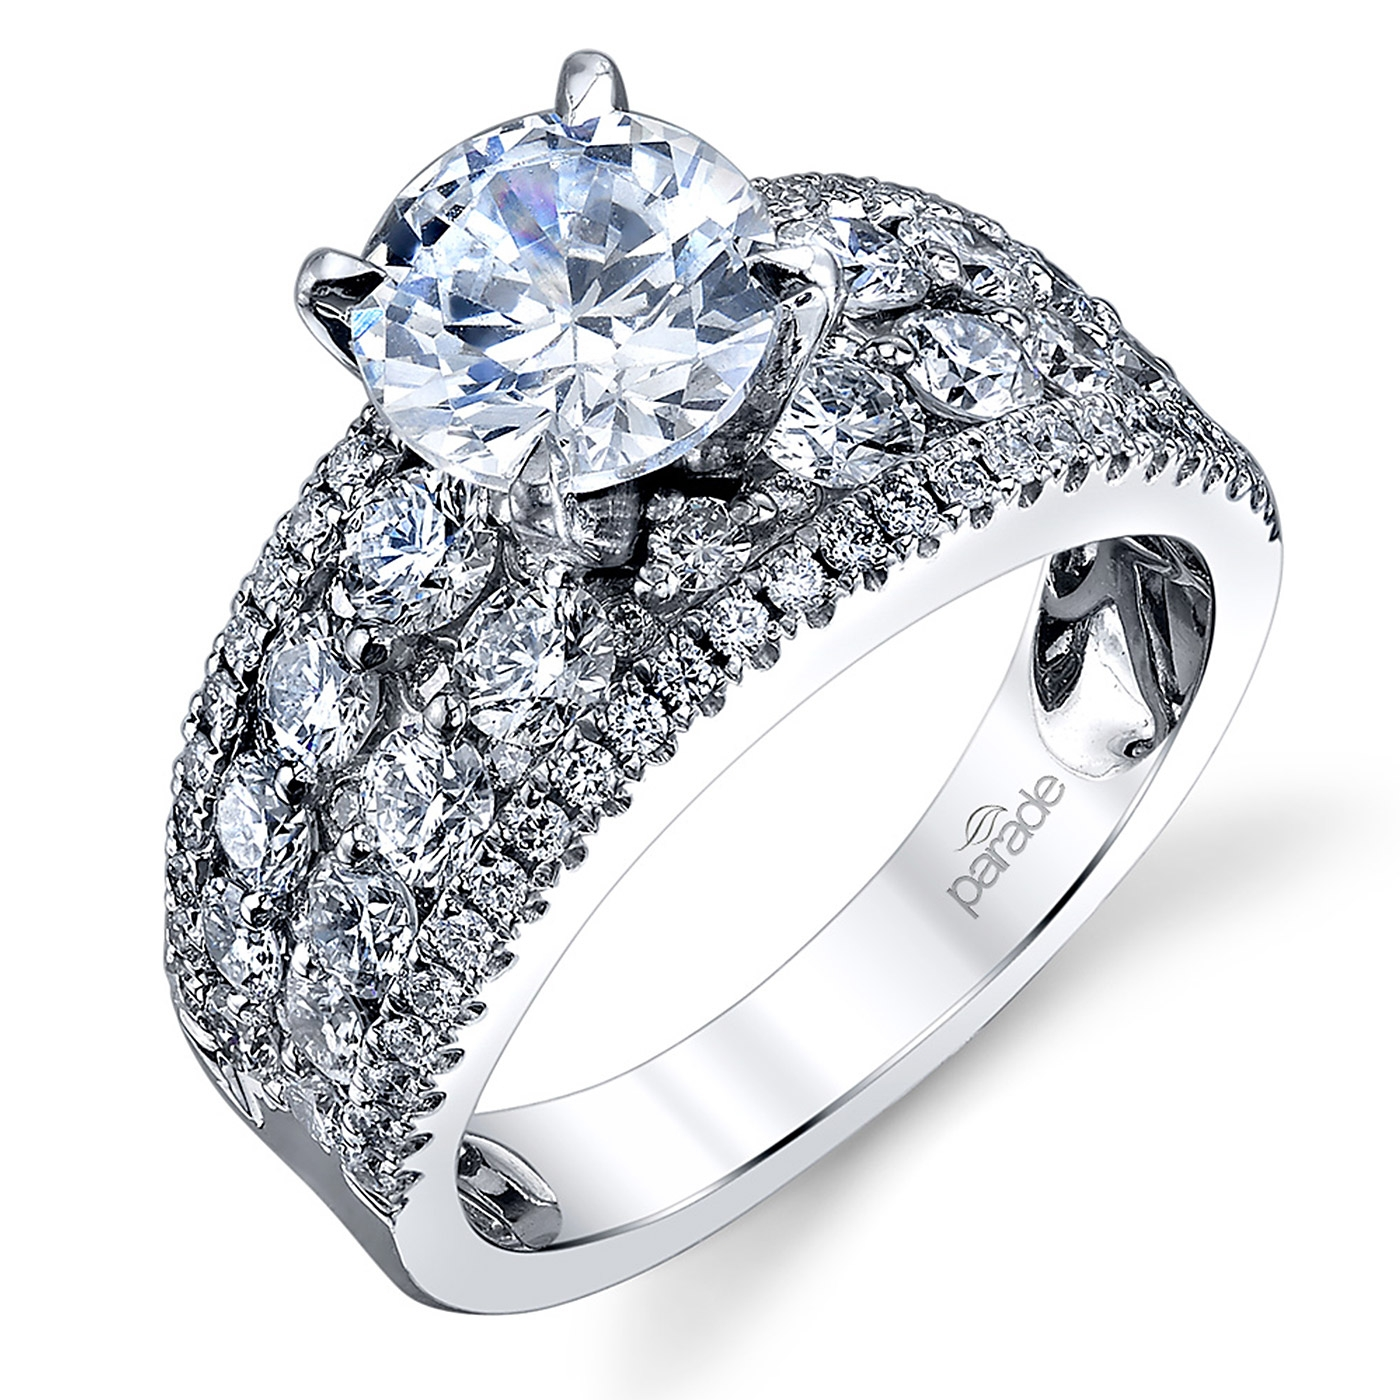 Parade Hemera Bridal 18 Karat Diamond Engagement Ring R3629